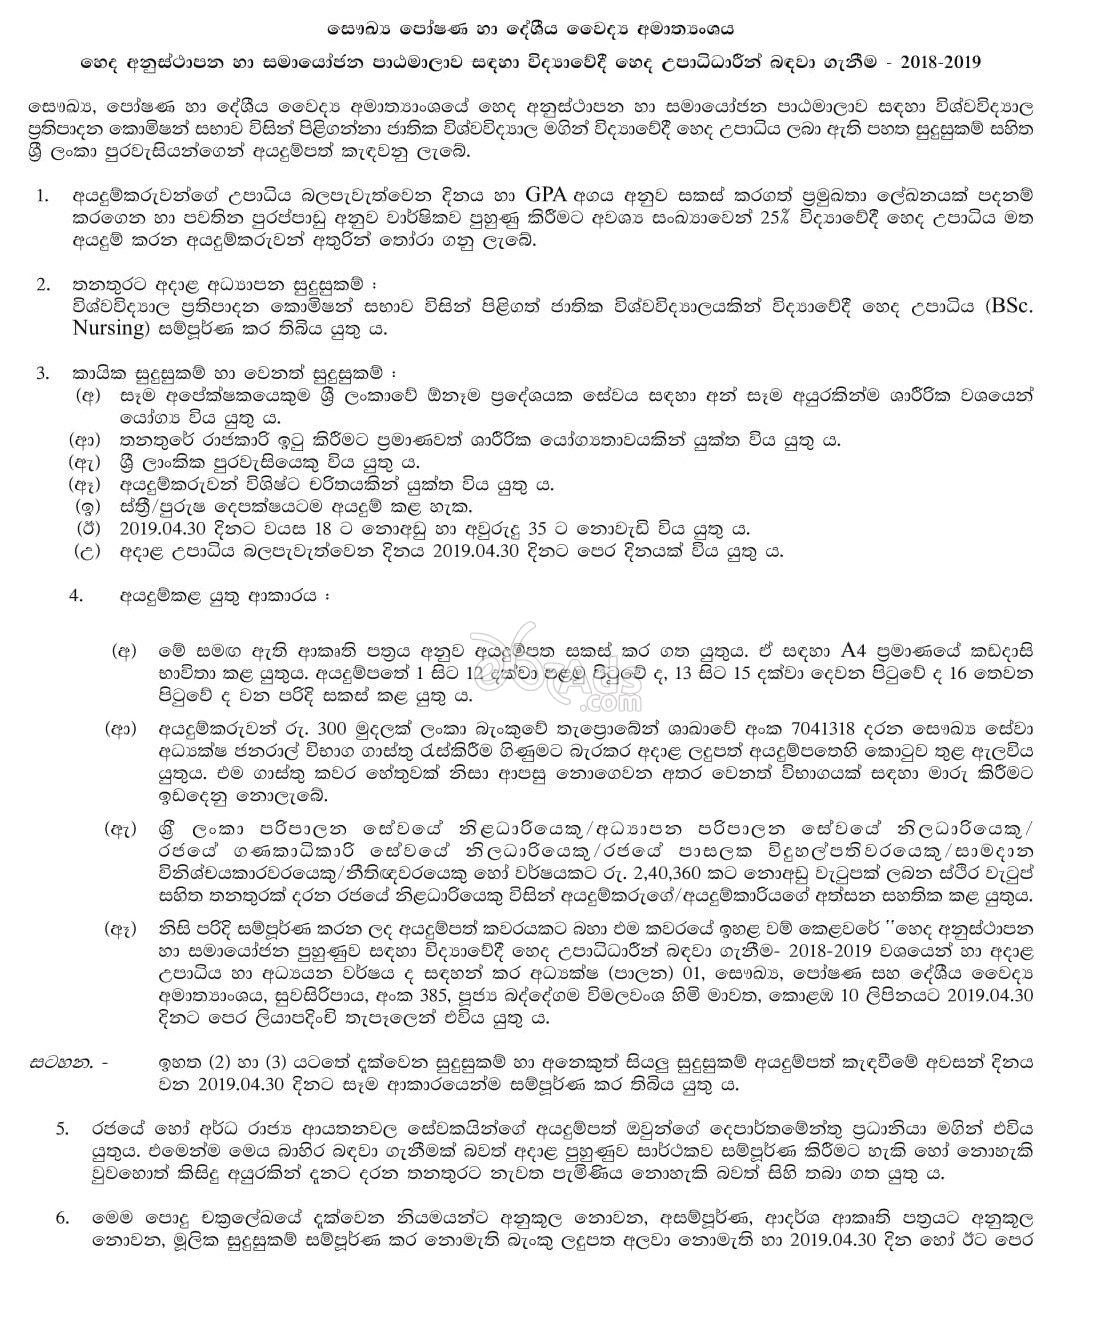 Recruitment of B.Sc. (Nursing) Government Vacancy at Ministry of Health, Nutrition & Indigenous Medicine